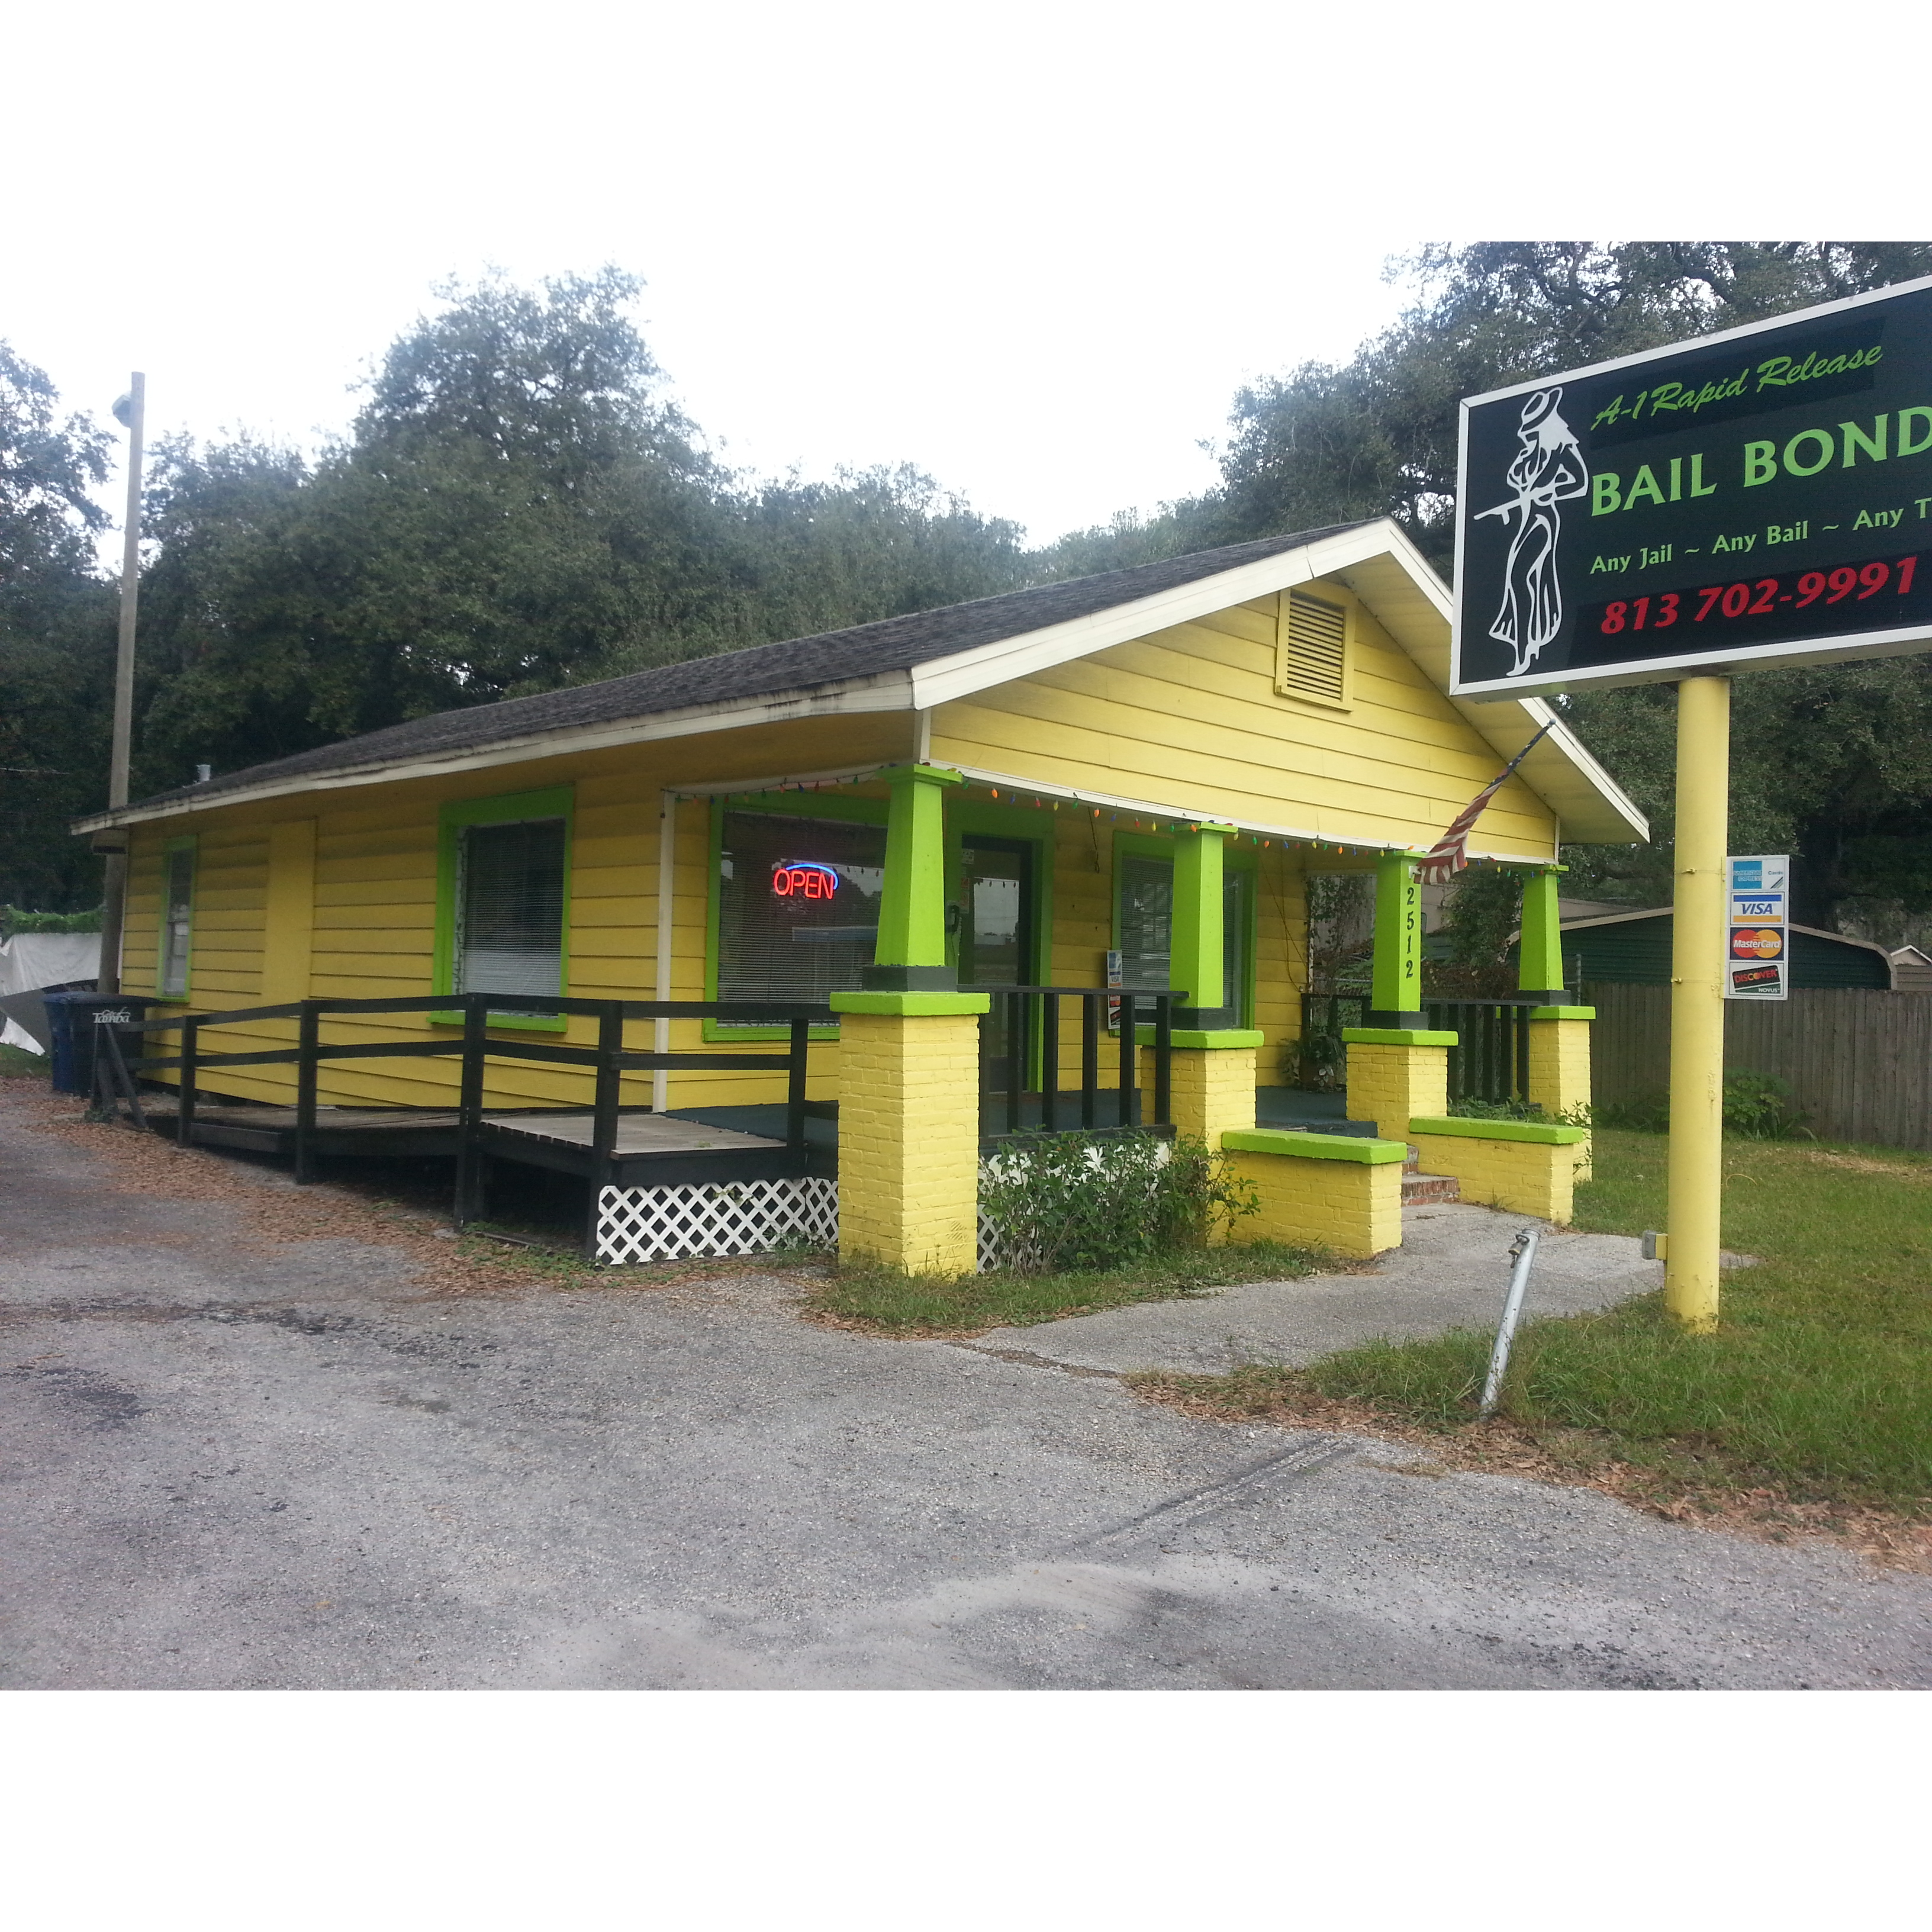 image of the A1 Rapid Release Bail Bonds